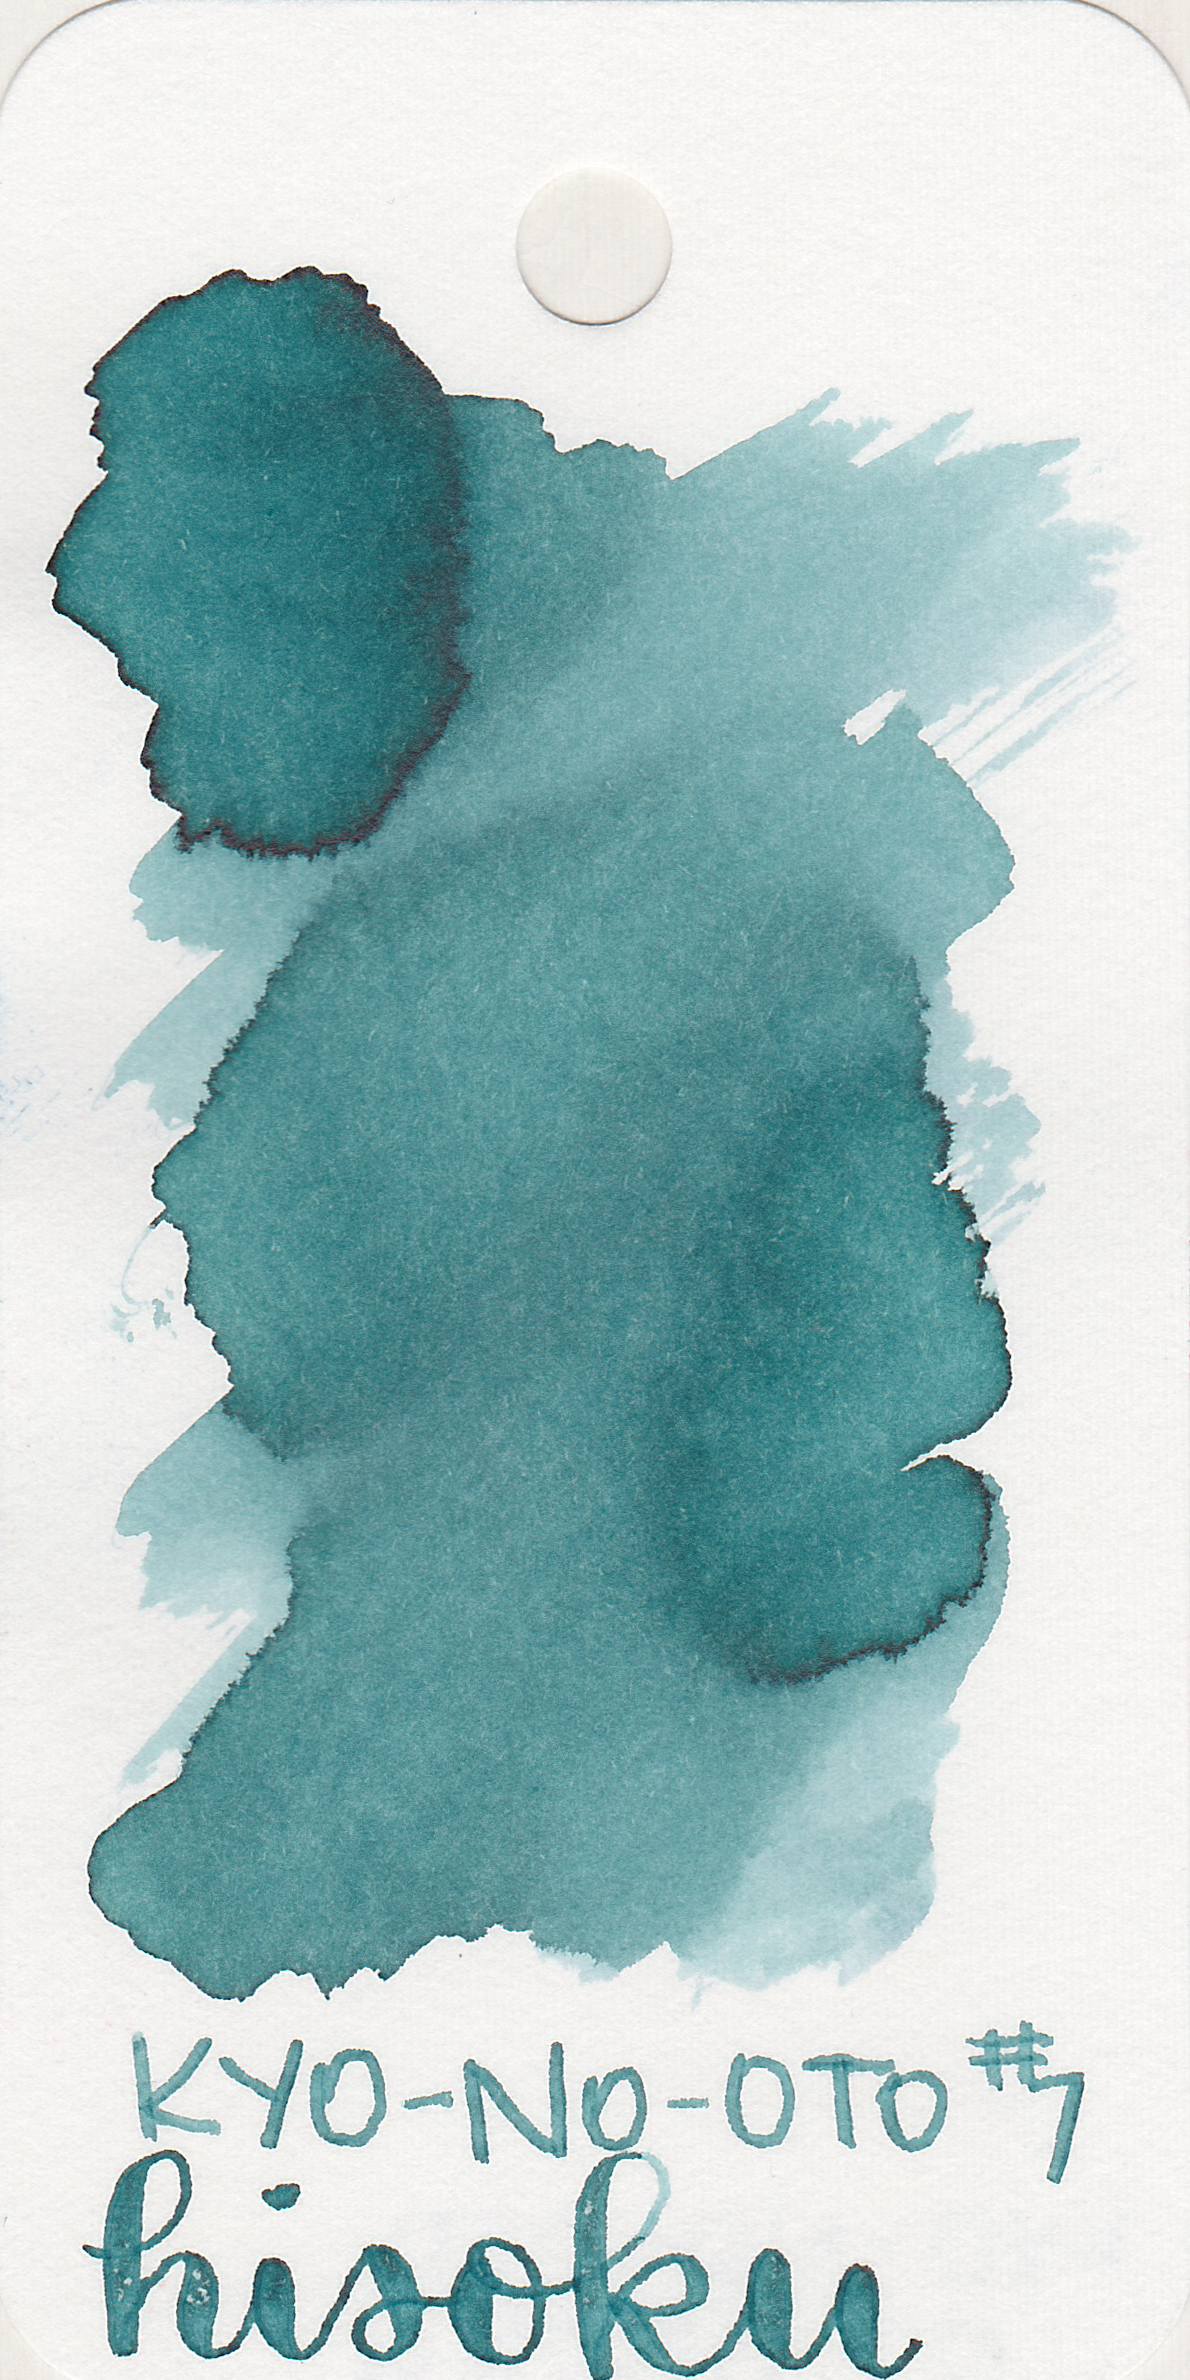 The color: - Hisoku is a light steel blue with shading. Seasonally, I would probably use this ink in the winter.